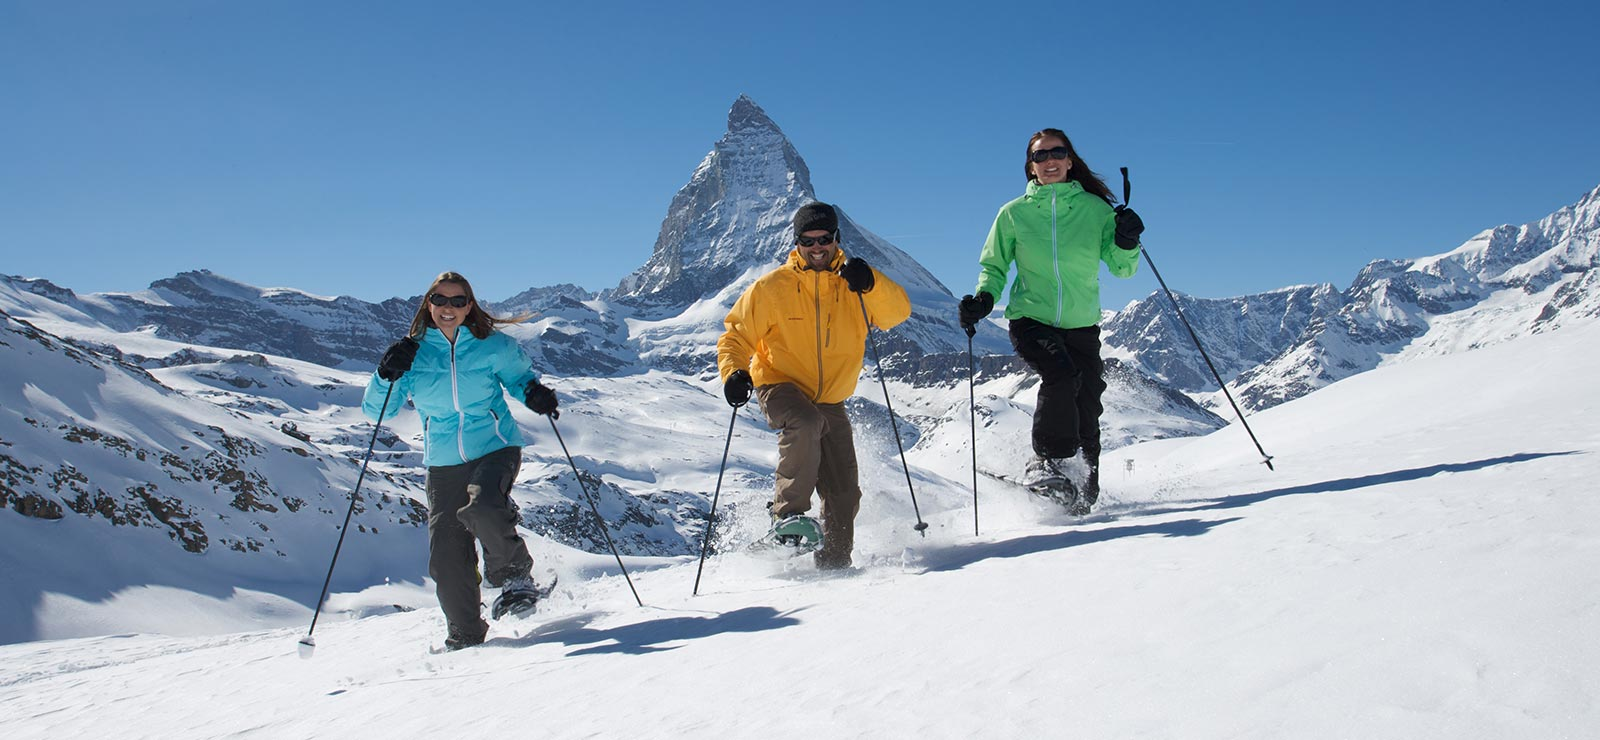 zermatt_winter_03.jpg